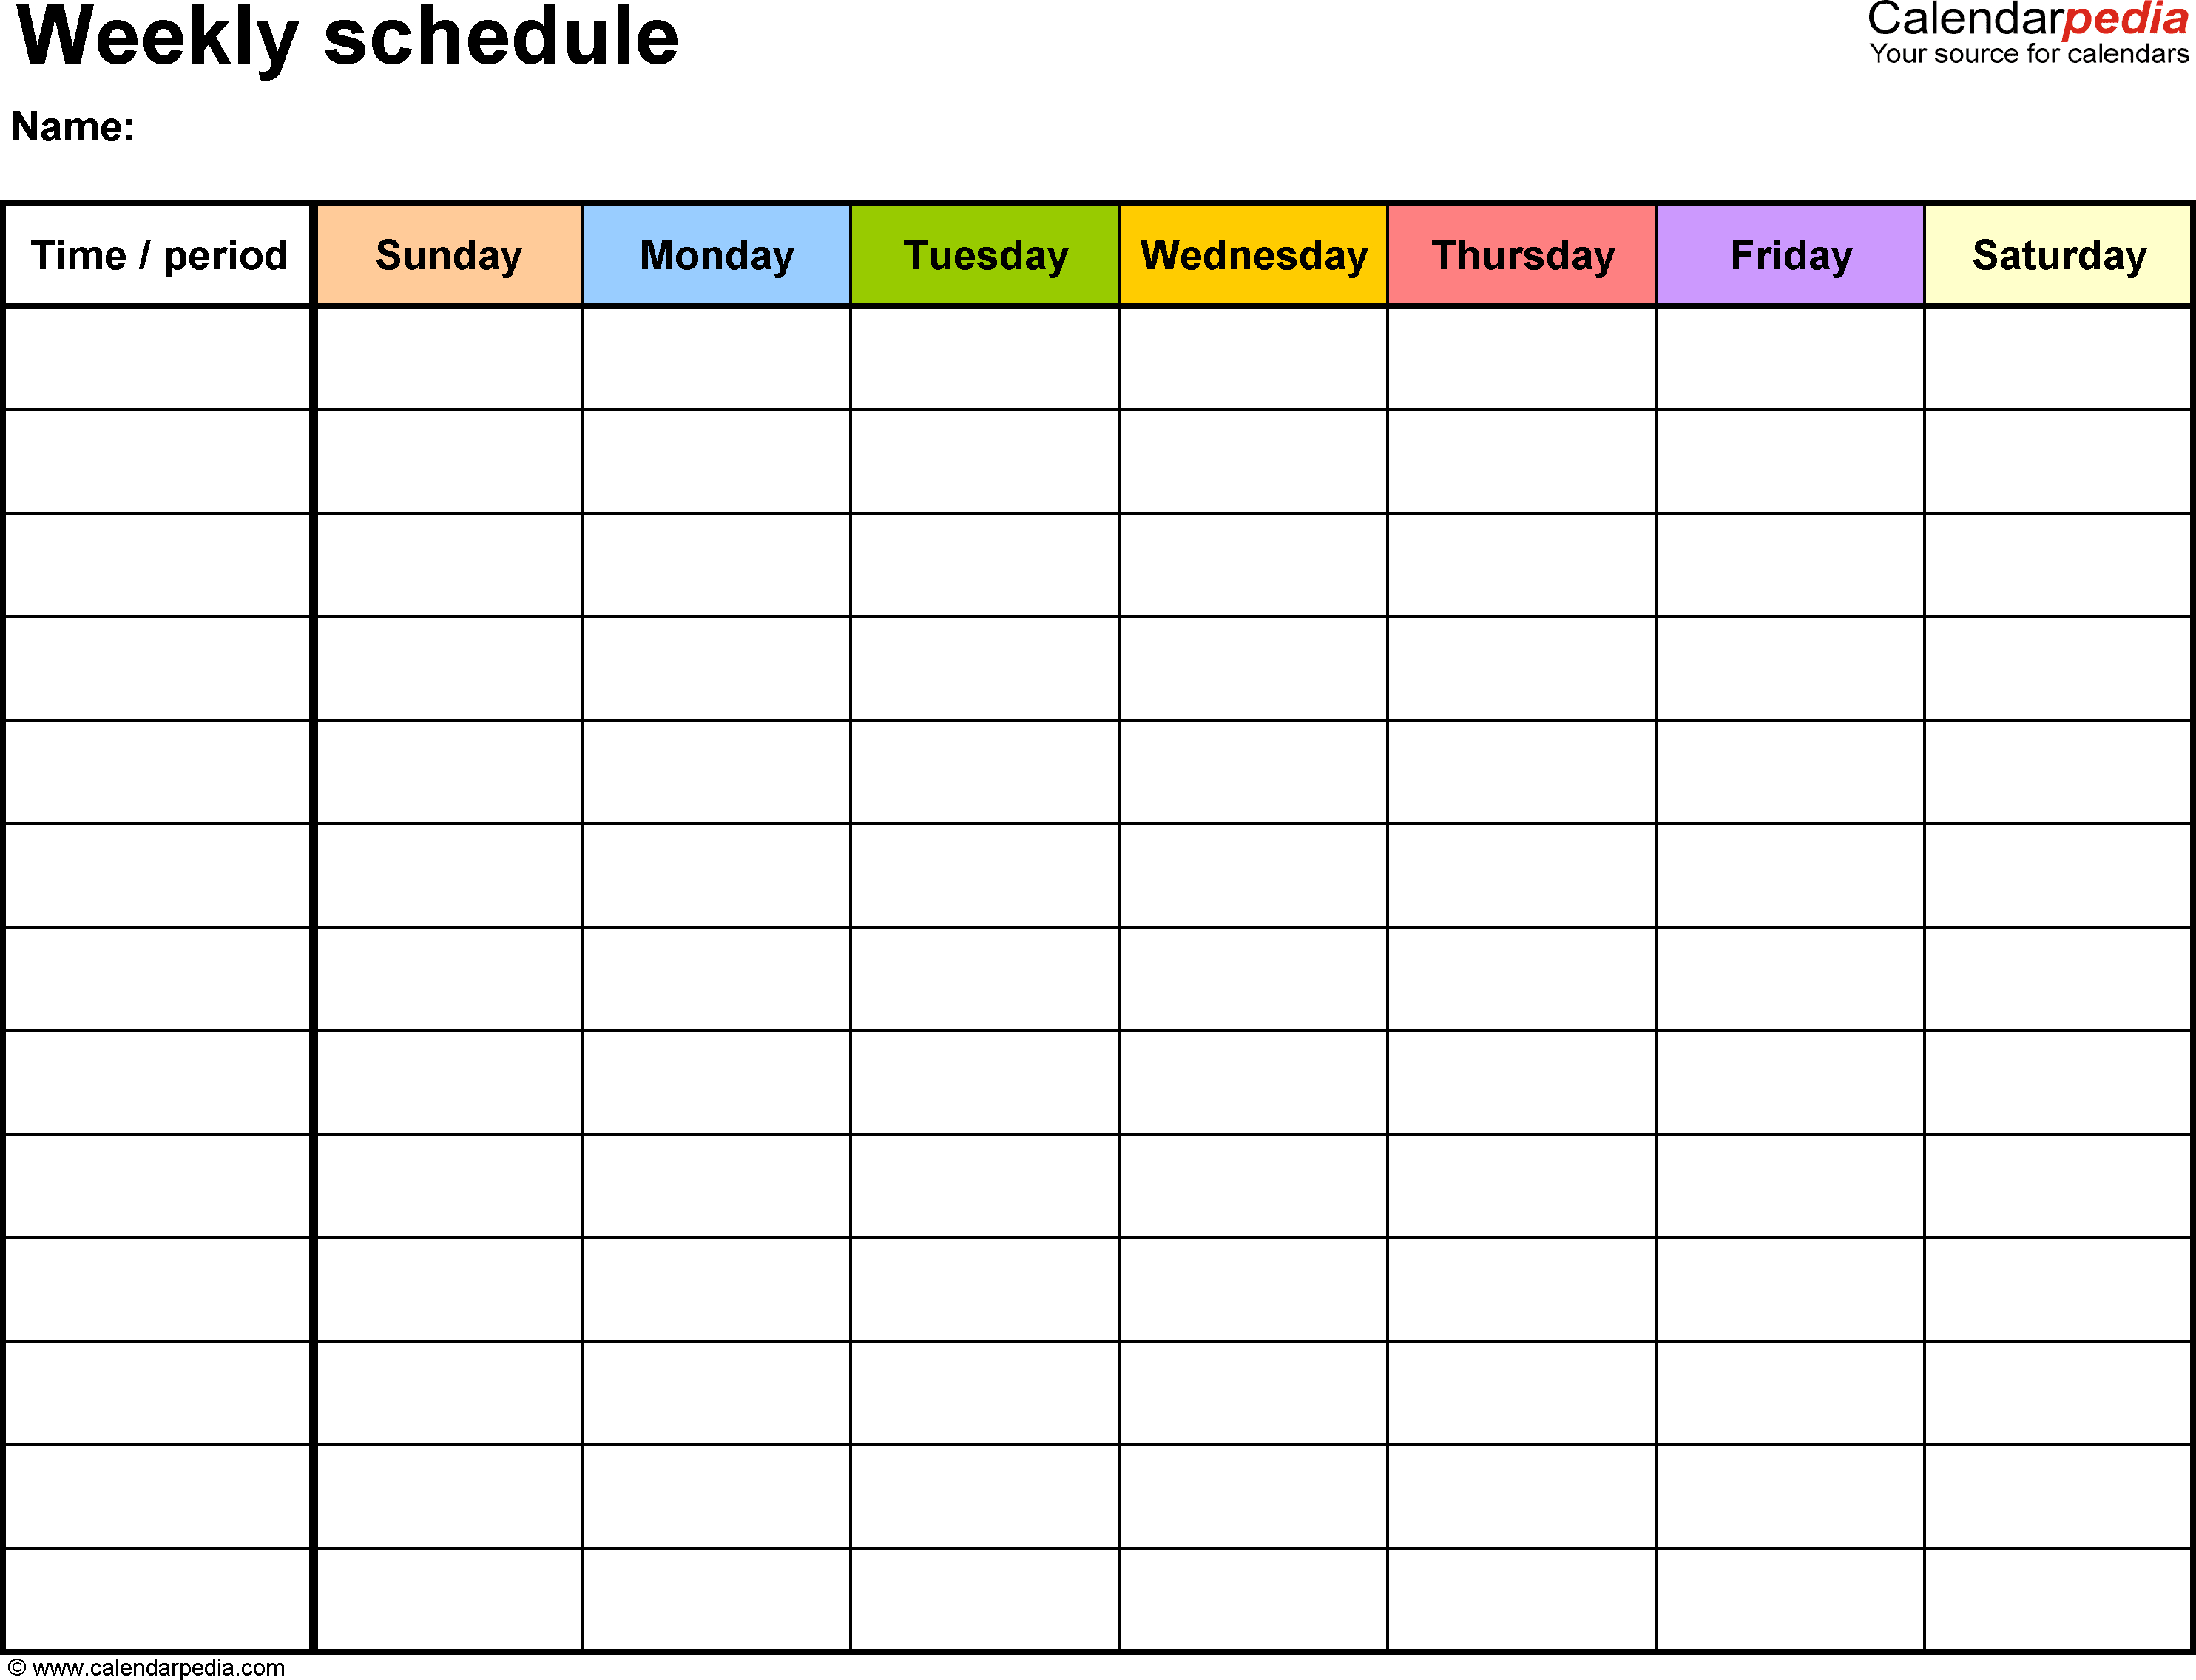 Weekly Schedule Template For Word Version 13: Landscape, 1 Monday-Friday Calendar Template Word